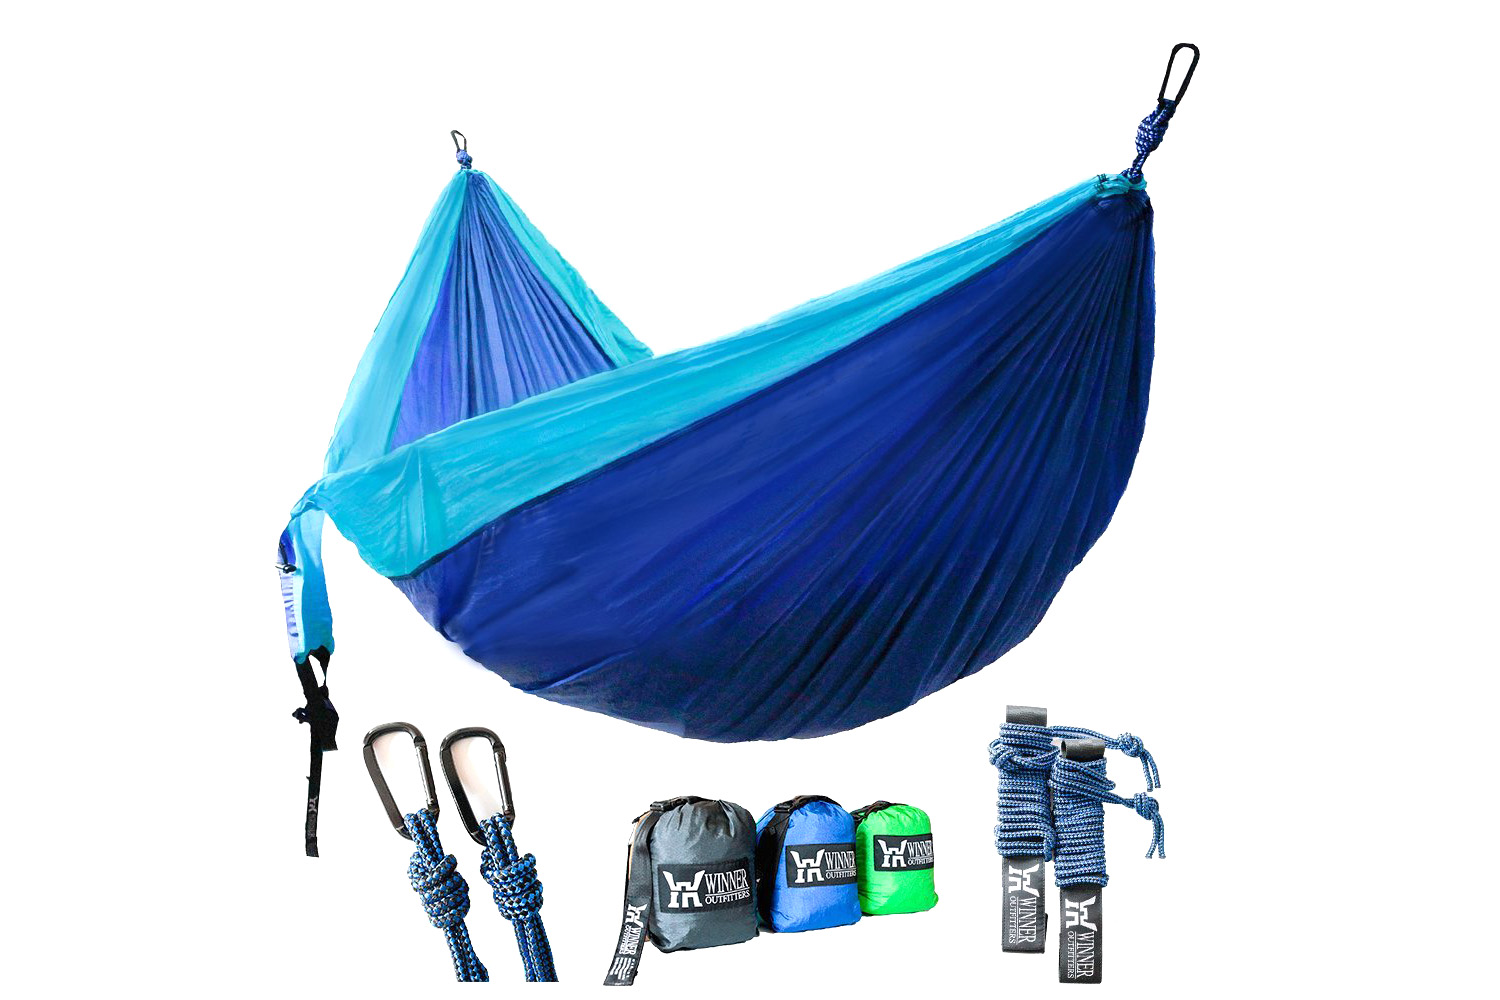 Two-Person Hammock, Includes Tree Straps 5 stars - $25 (Prime)